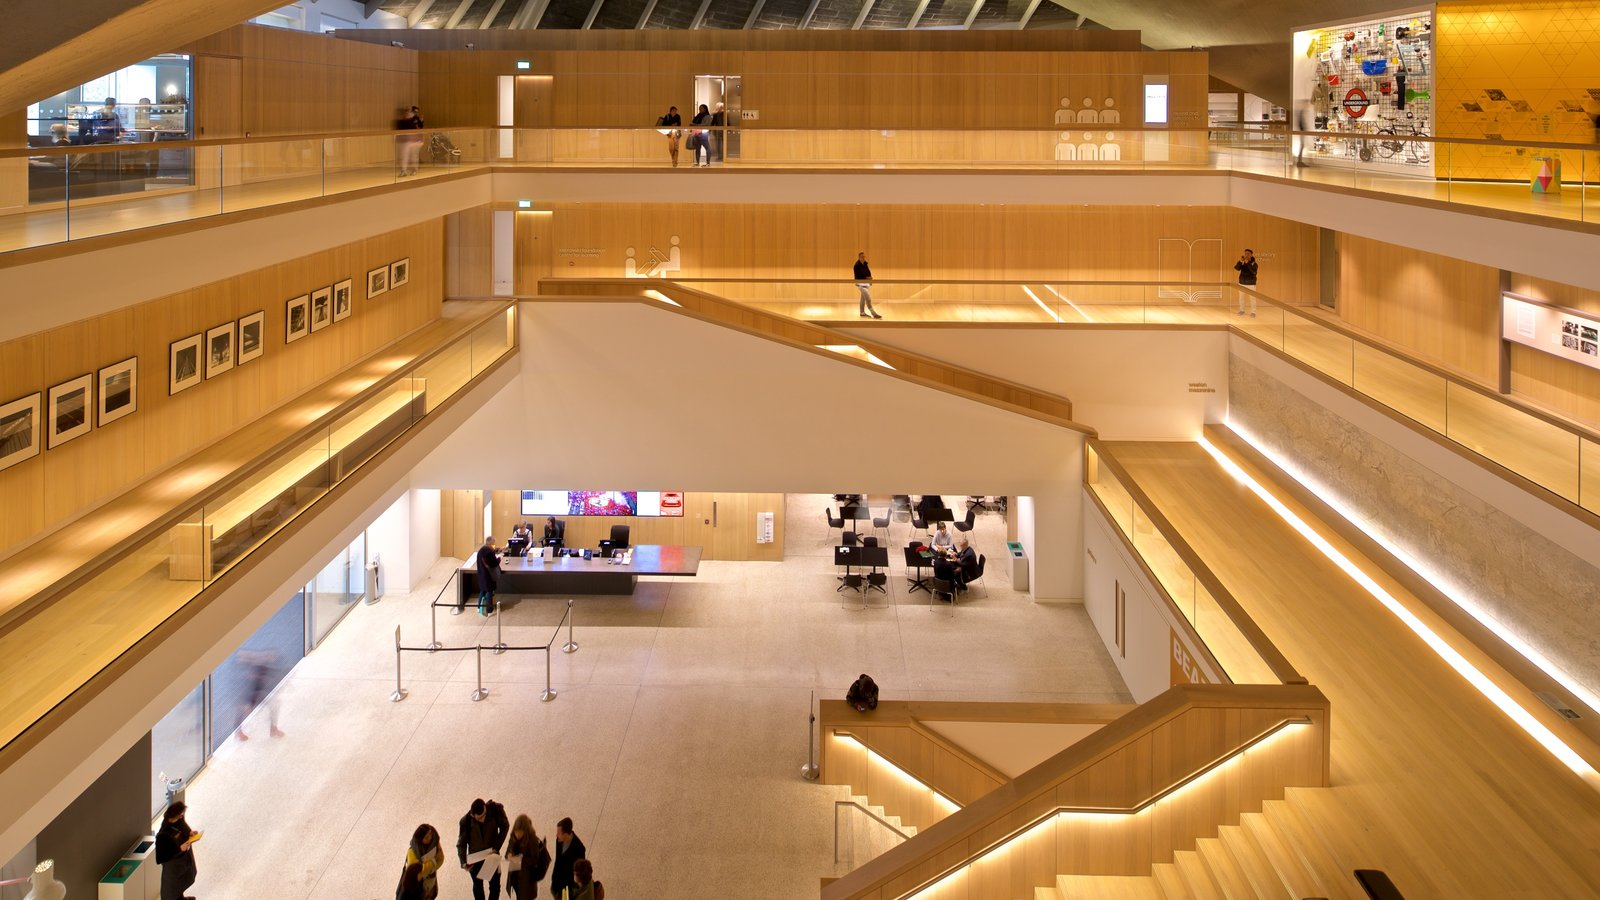 Design Museum which includes interior views